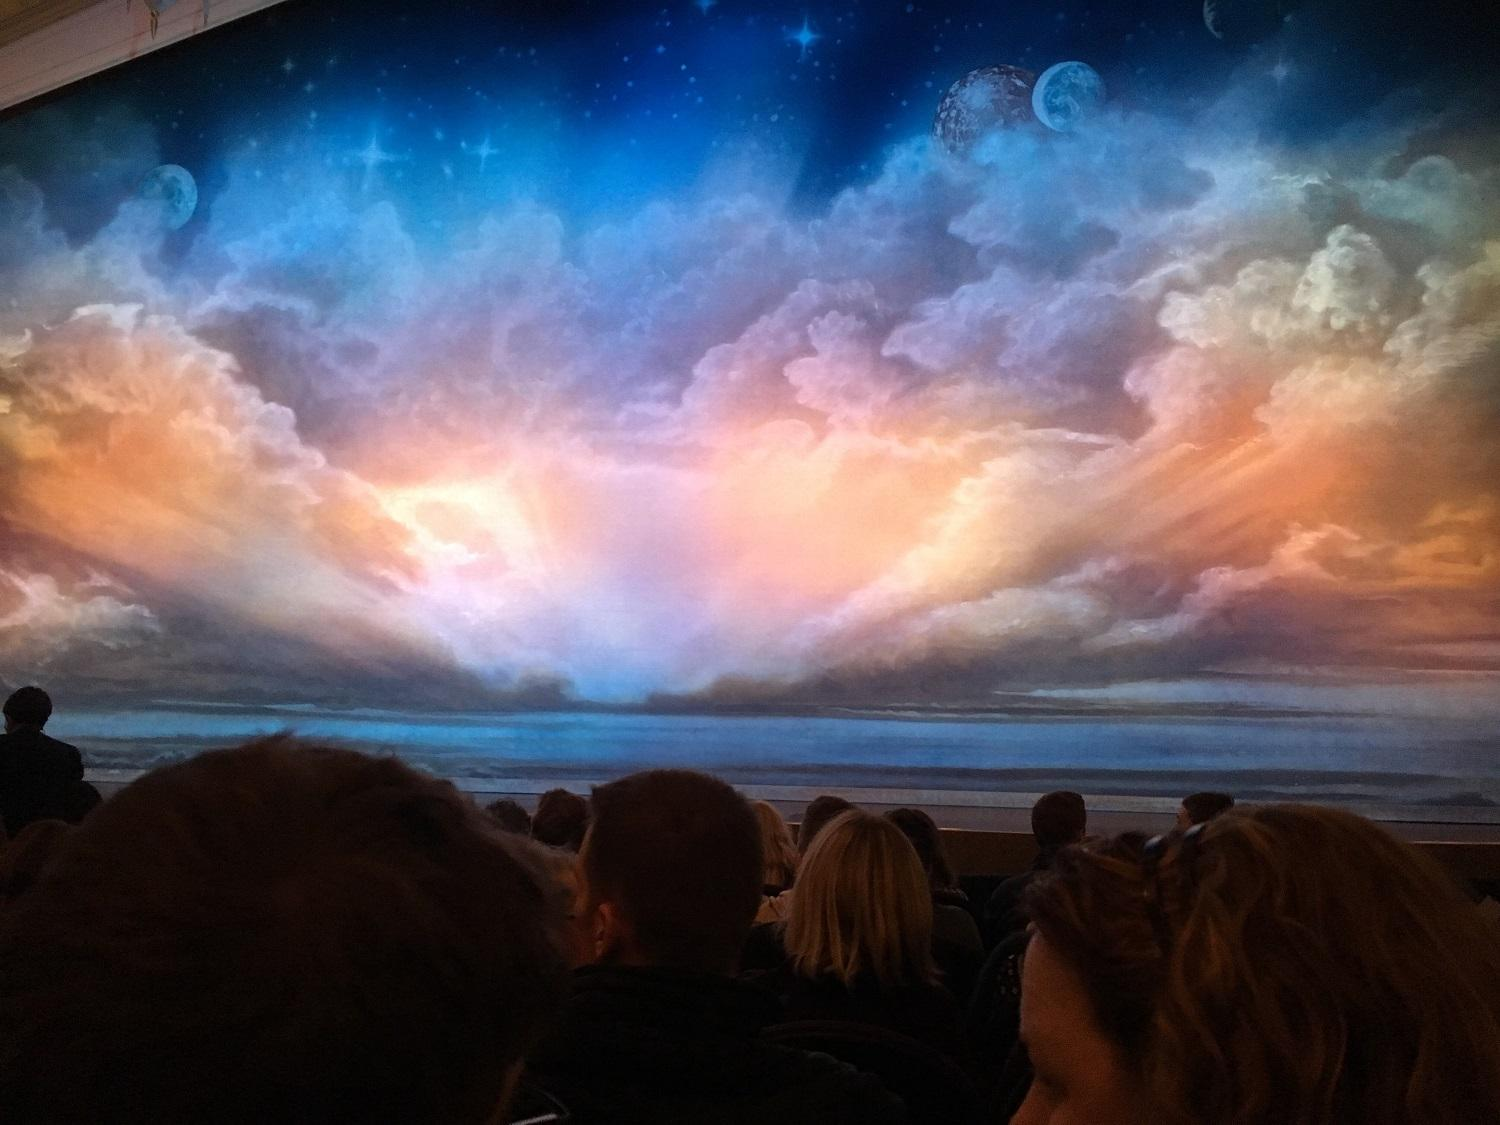 Eugene O'Neill Theatre Section Orchestra Center Row G Seat 103